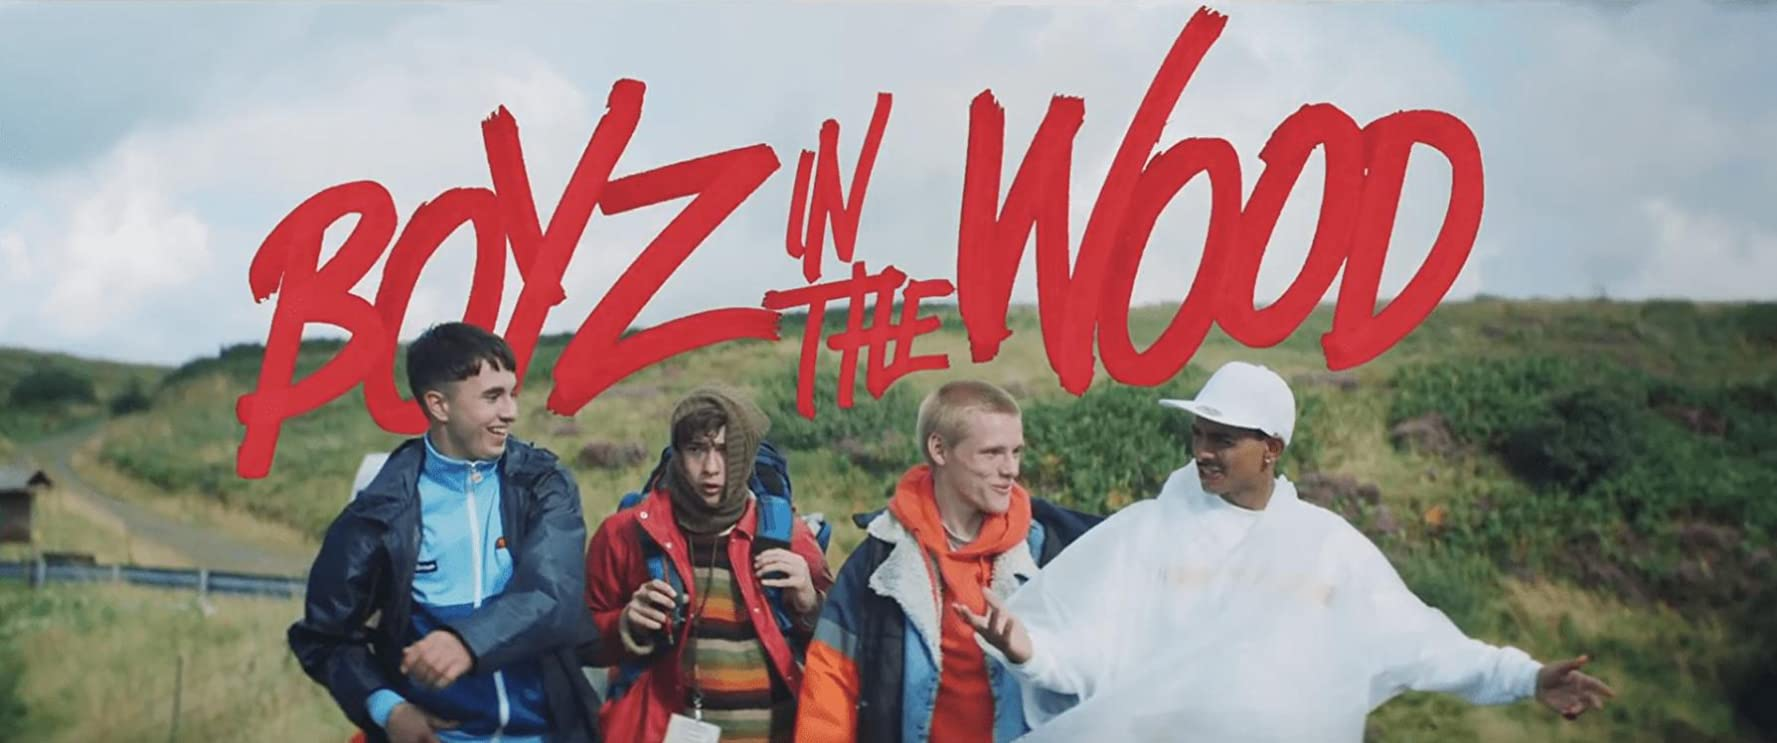 Anarchic Comedy BOYZ IN THE WOOD Launches (7 August) Worldwide on Amazon Prime Video